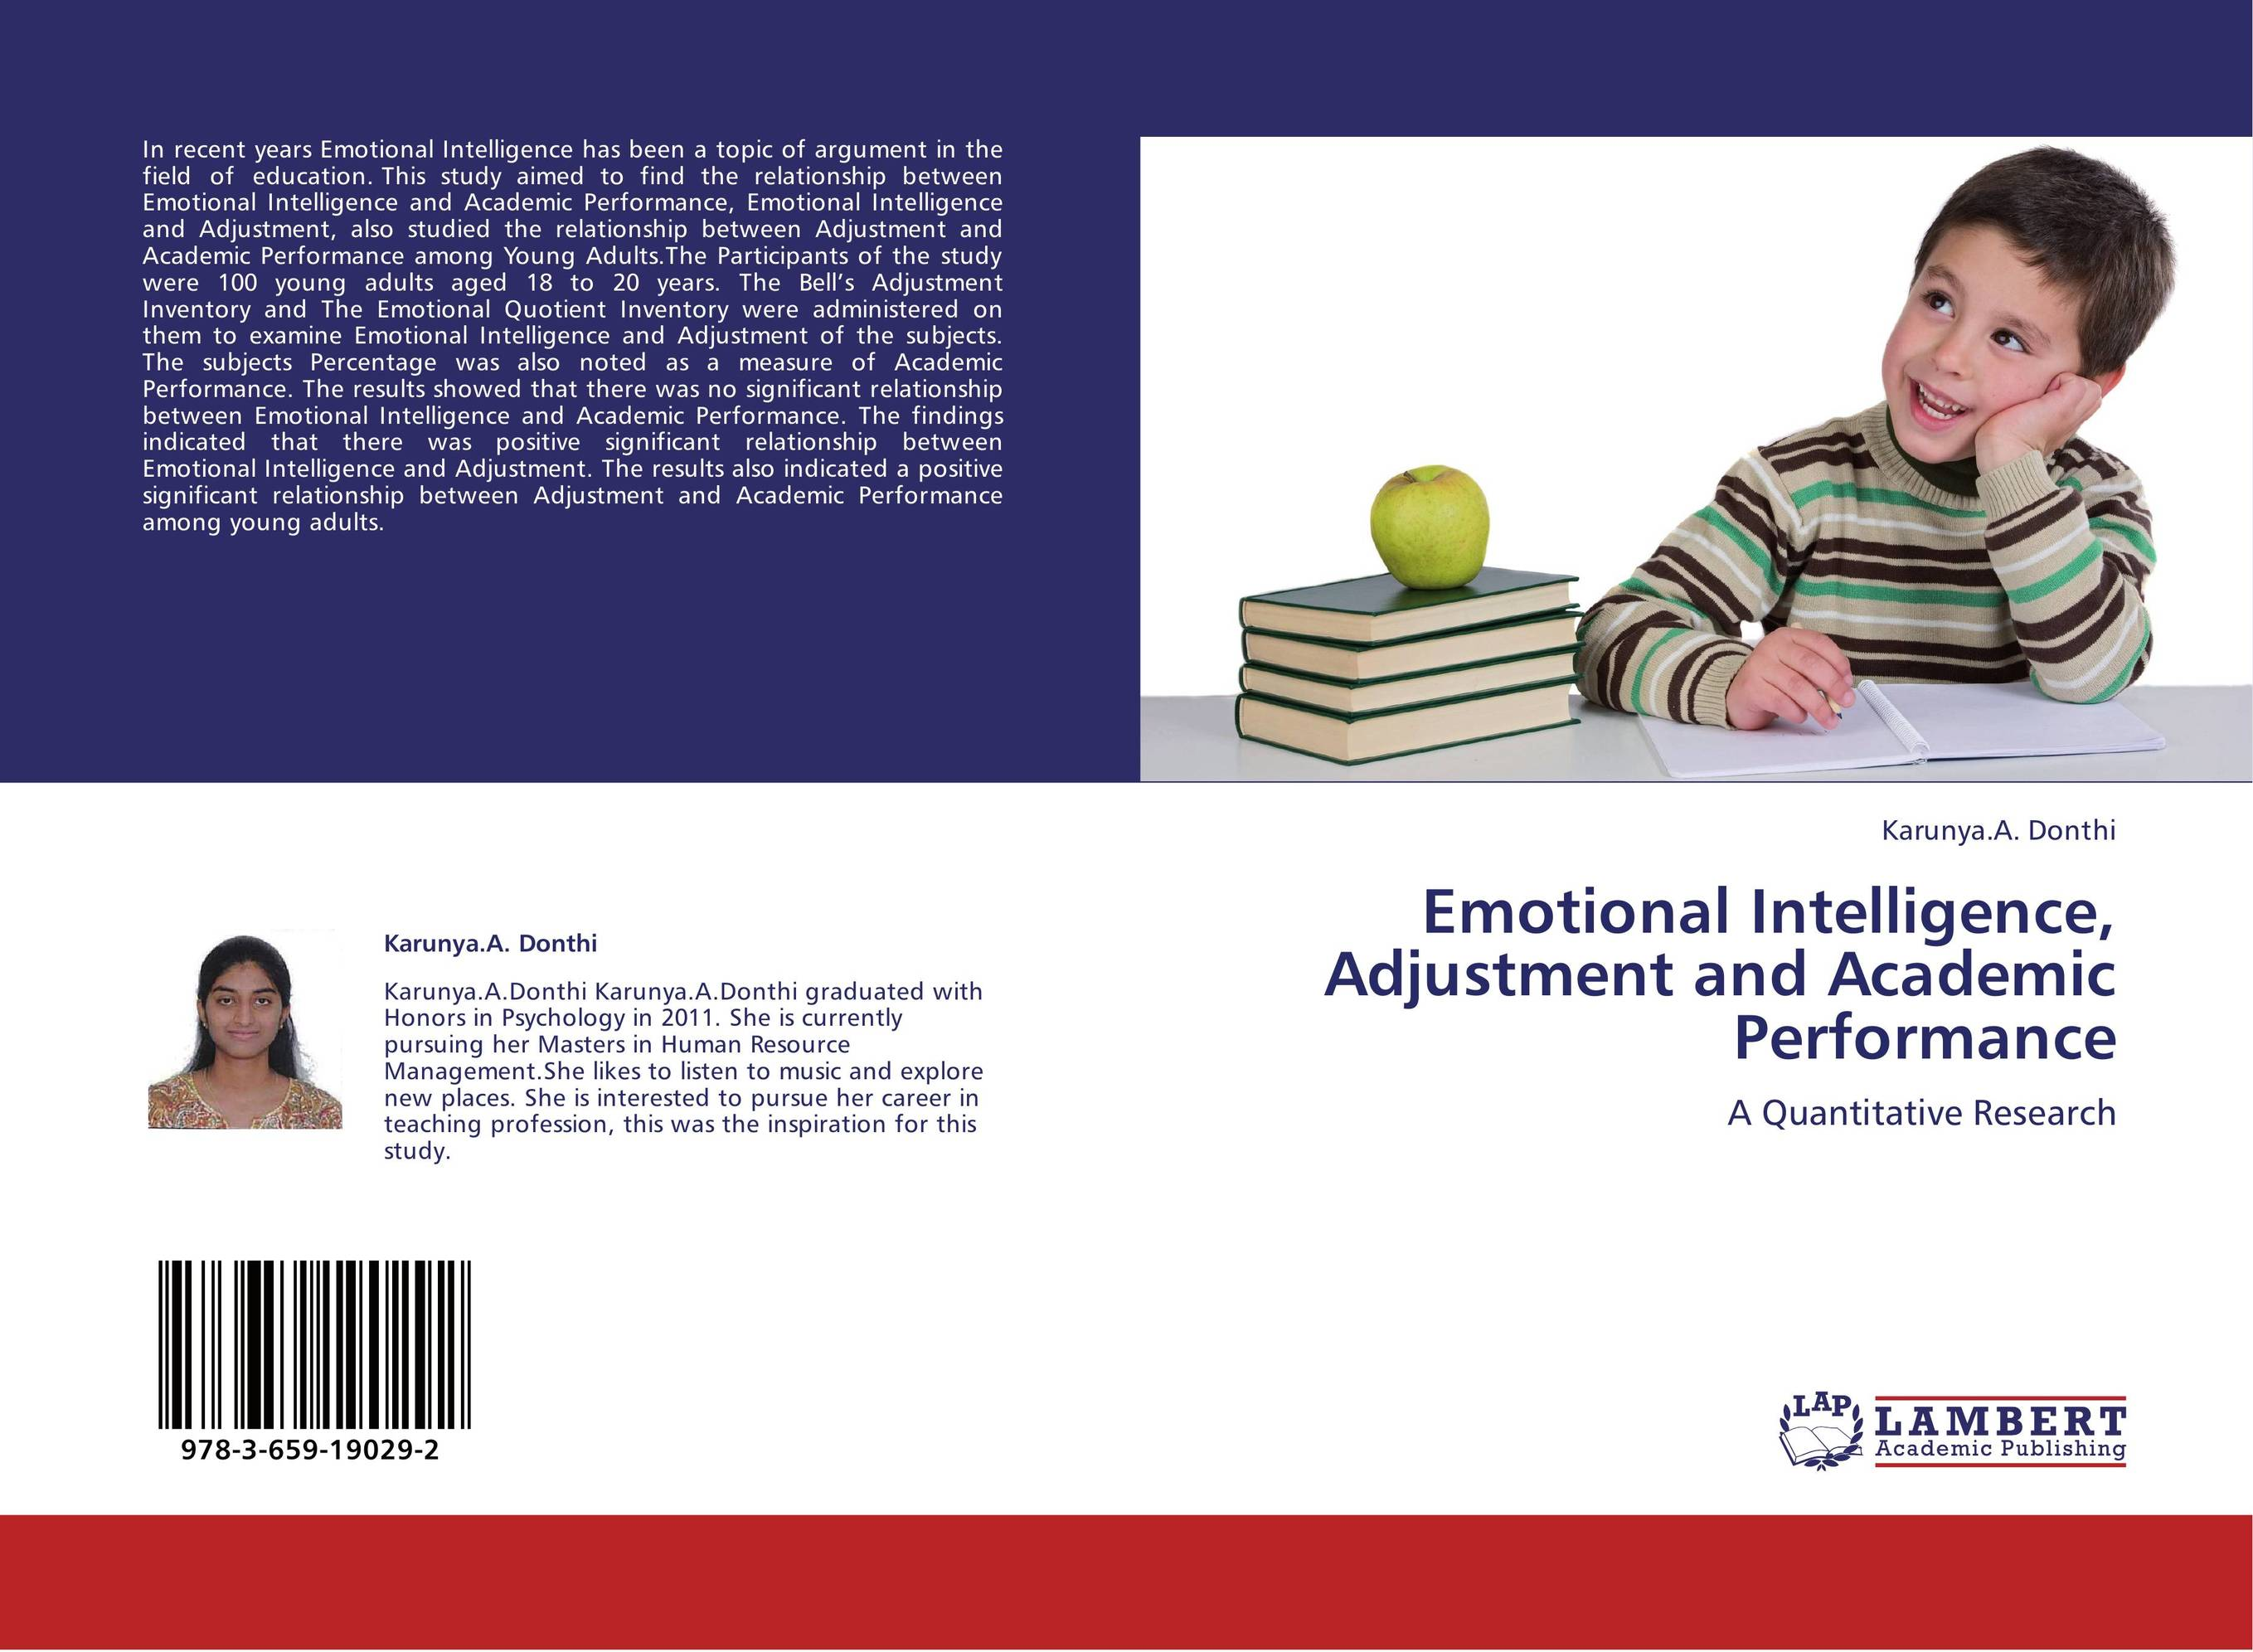 emotional intelligence study A compilation of studies called the business case for emotional intelligence, by rutgers university researcher cary cherniss found repeated evidence that possession of such emotional competencies as cooperation, accurate self-assessment, optimism, and ability to handle stress led to greater productivity, job satisfaction or worker retention.